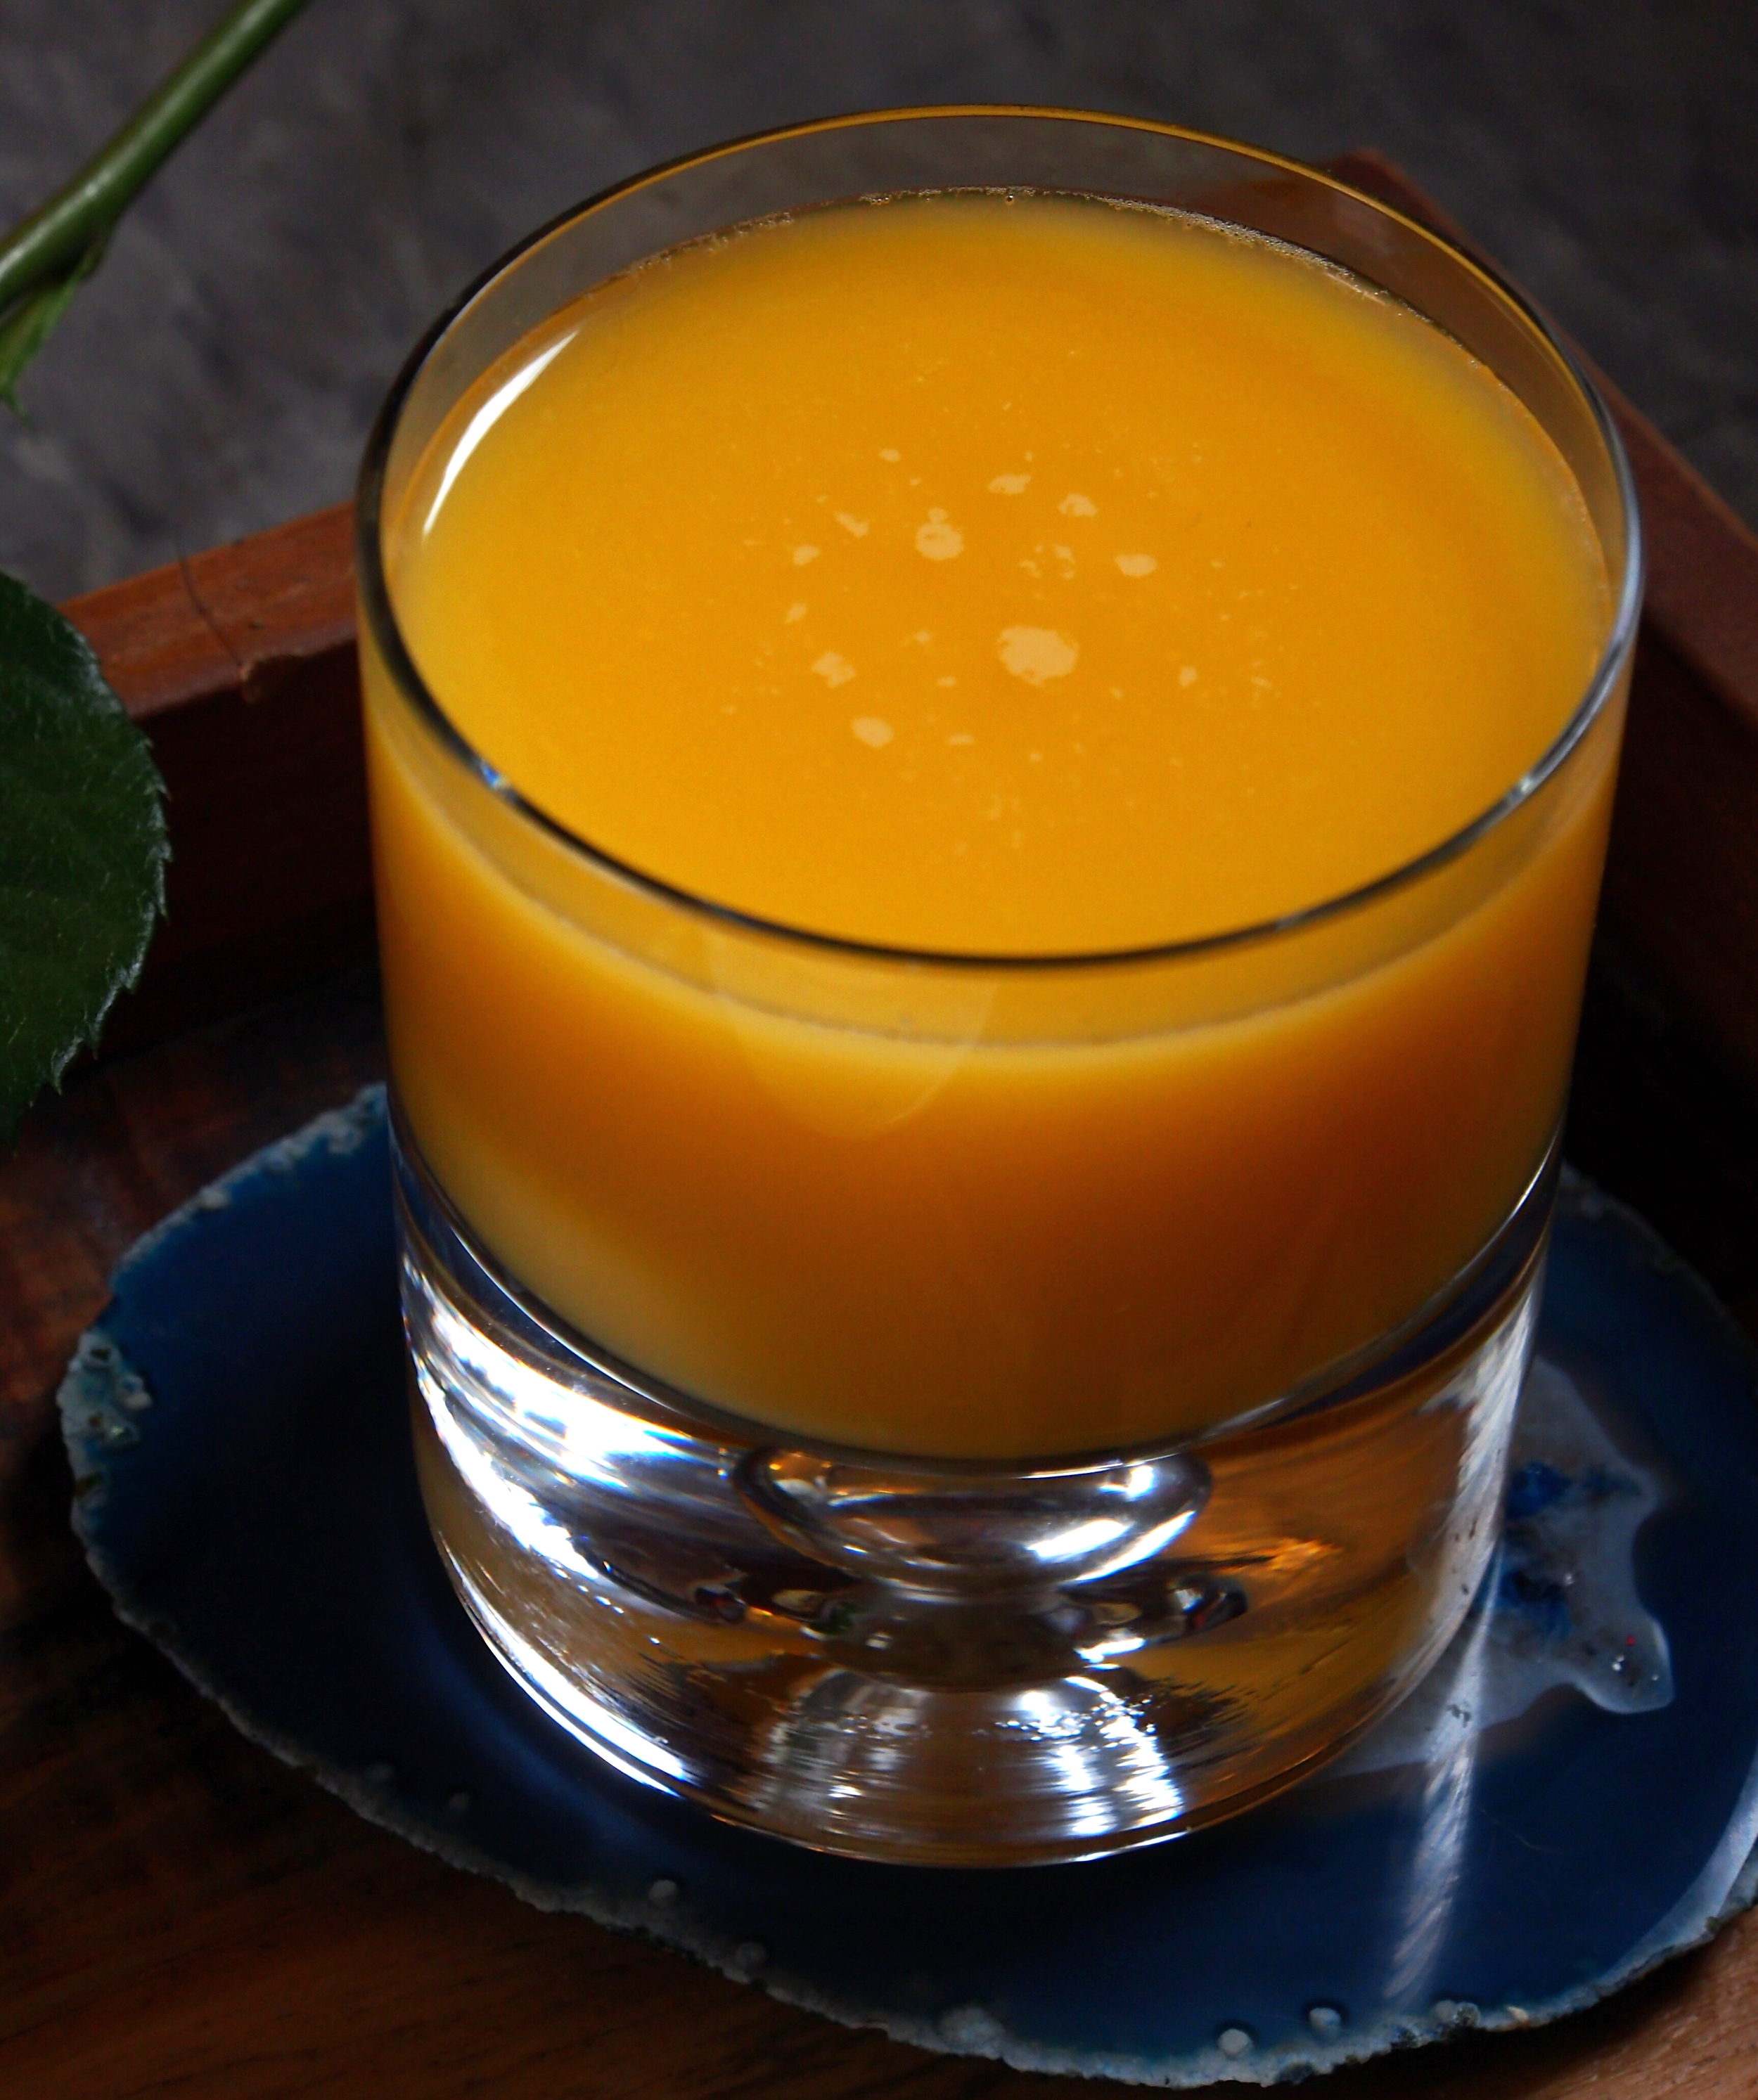 Nothing like a glass of OJ to help wash it down! So refreshing, mmmm! :)